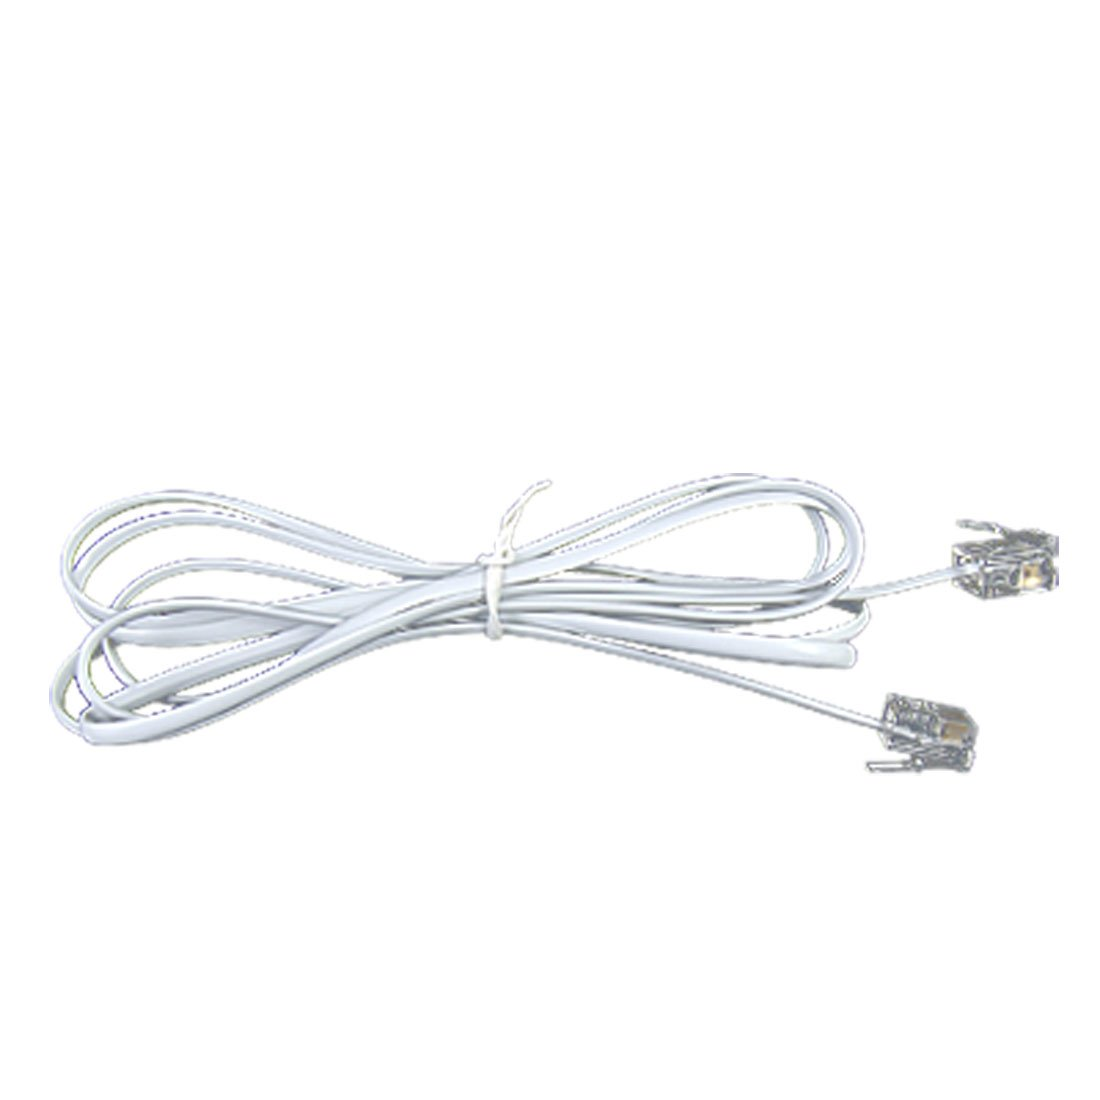 rj11 to rj11 male to male telephone cable connector white dw new. Black Bedroom Furniture Sets. Home Design Ideas